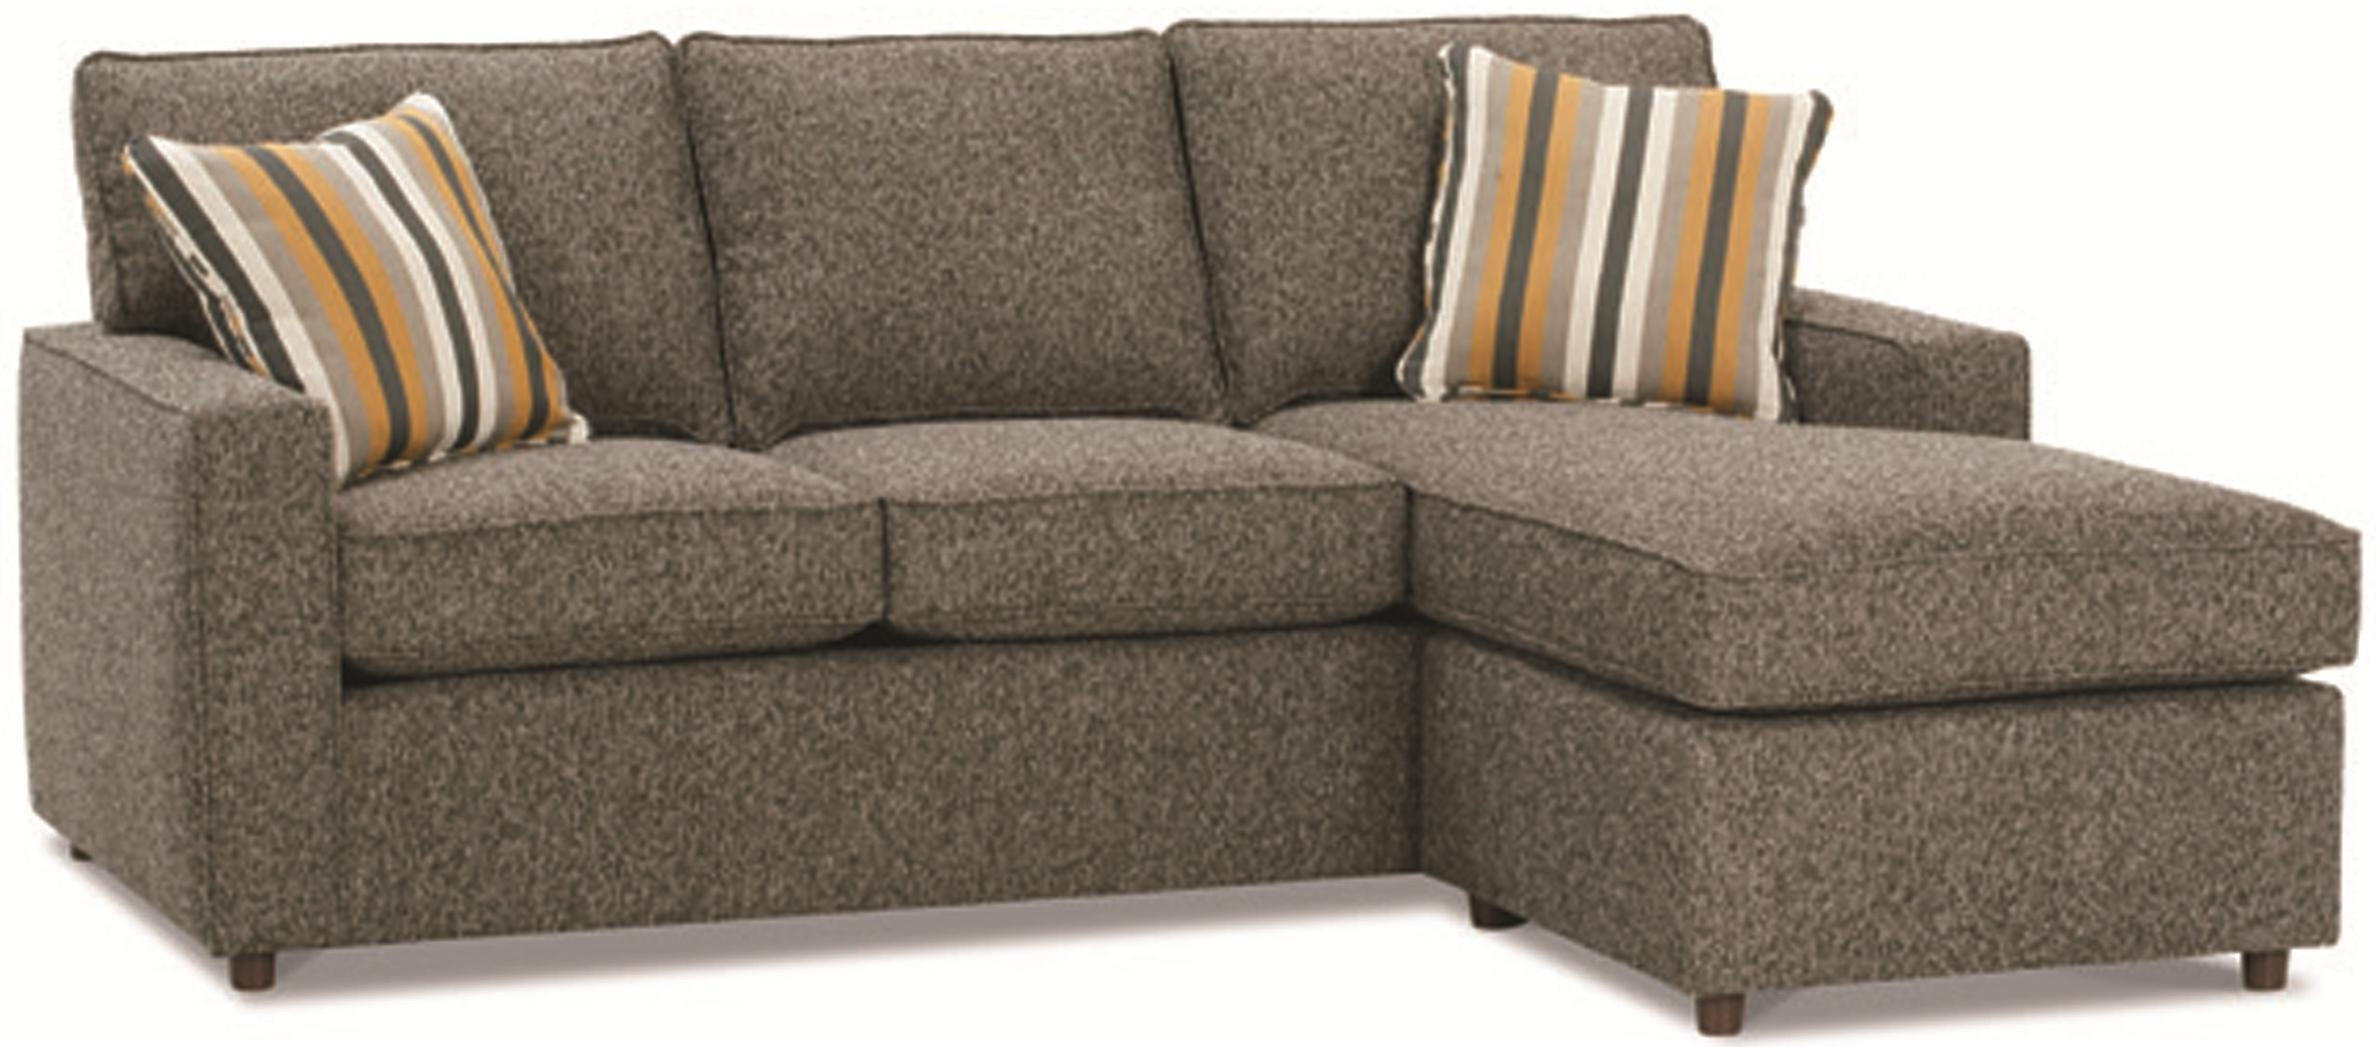 Rowe Monaco Contemporary Sofa With Reversible Chaise Ottoman For Rowe Sectional Sofas (View 12 of 20)